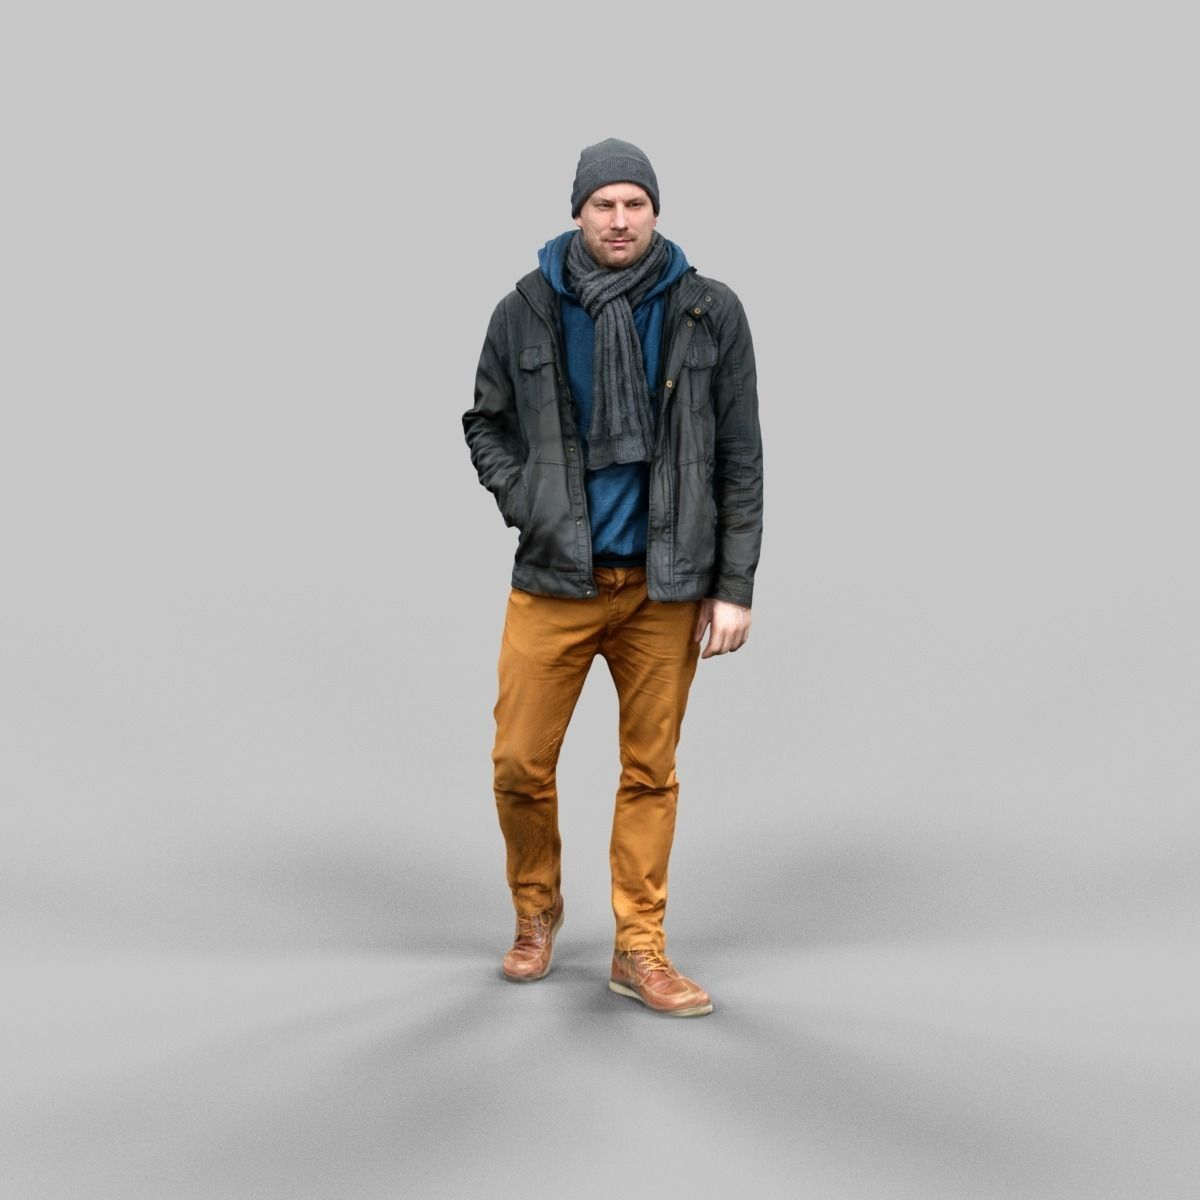 Casual Male Walking Pose Free Vr Ar Low Poly 3d Model